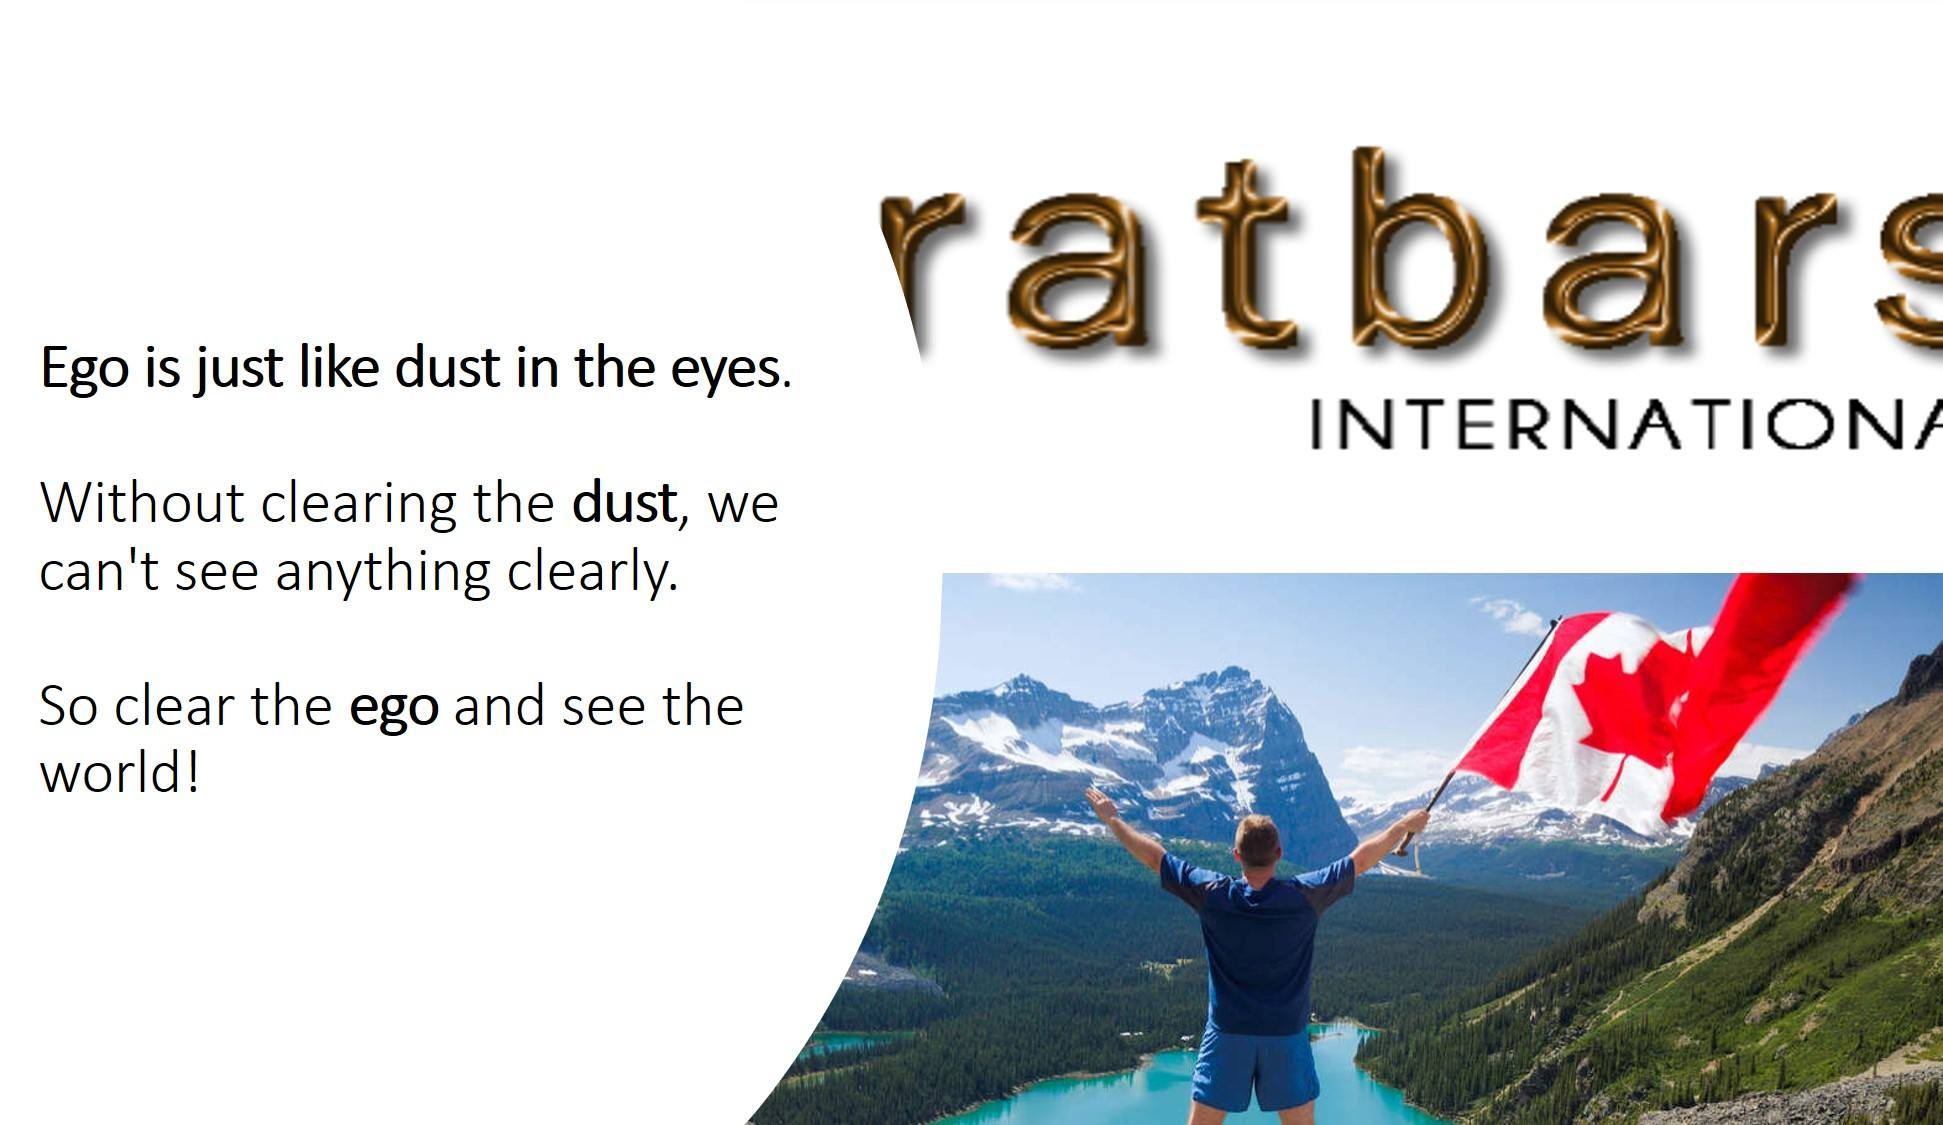 Is Karatbars legal in Canada - Yes, if you let go of ego